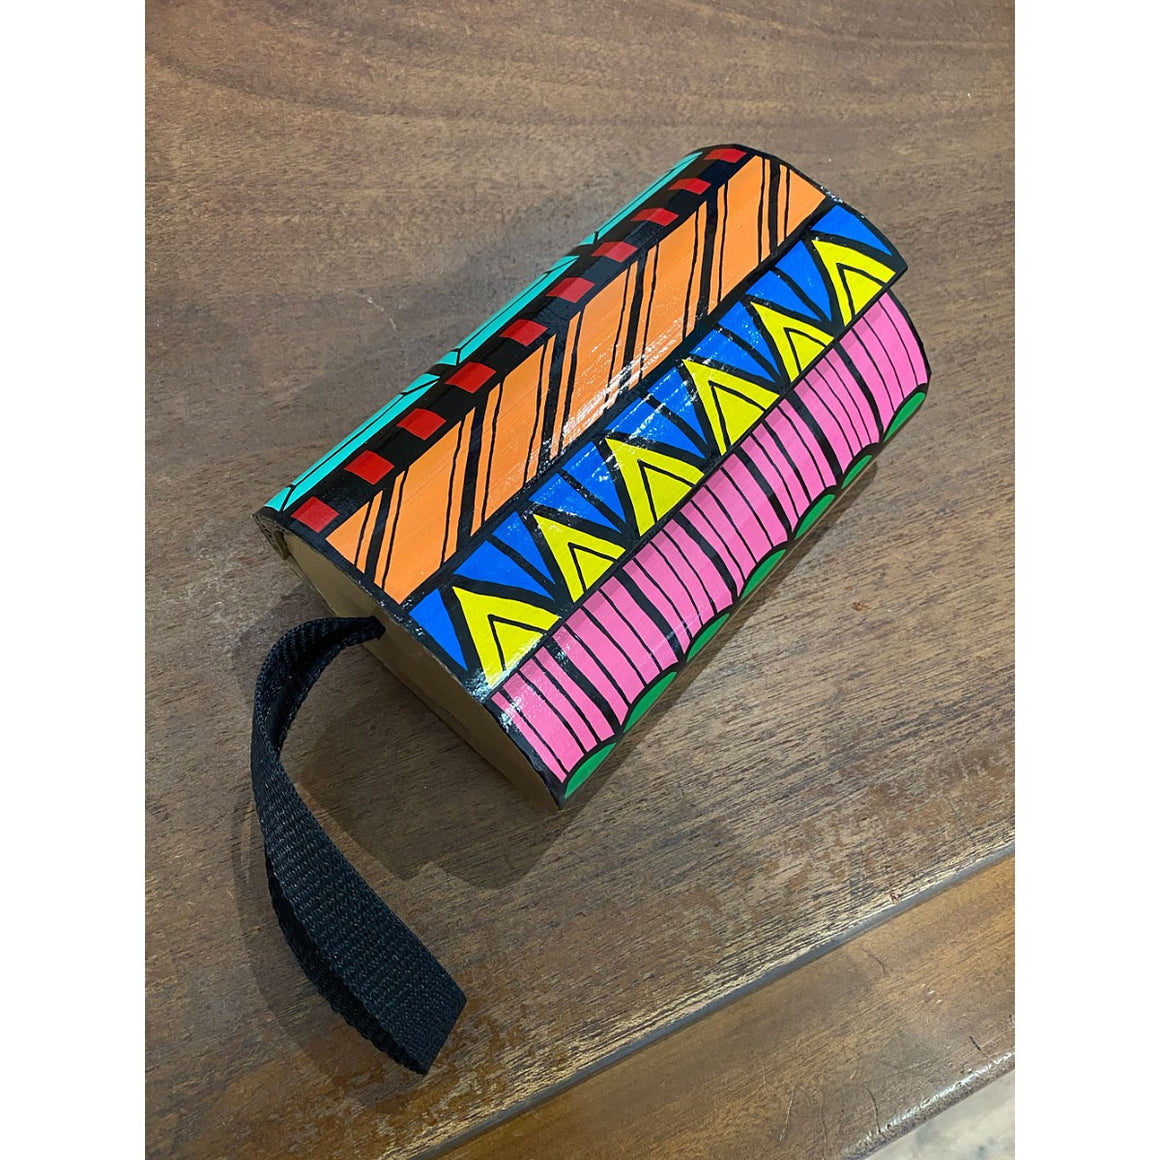 A brightly coloured and patterned clutch bag made by Jeff McCann featuring a black wrist strap. Displayed on a wooden surface,